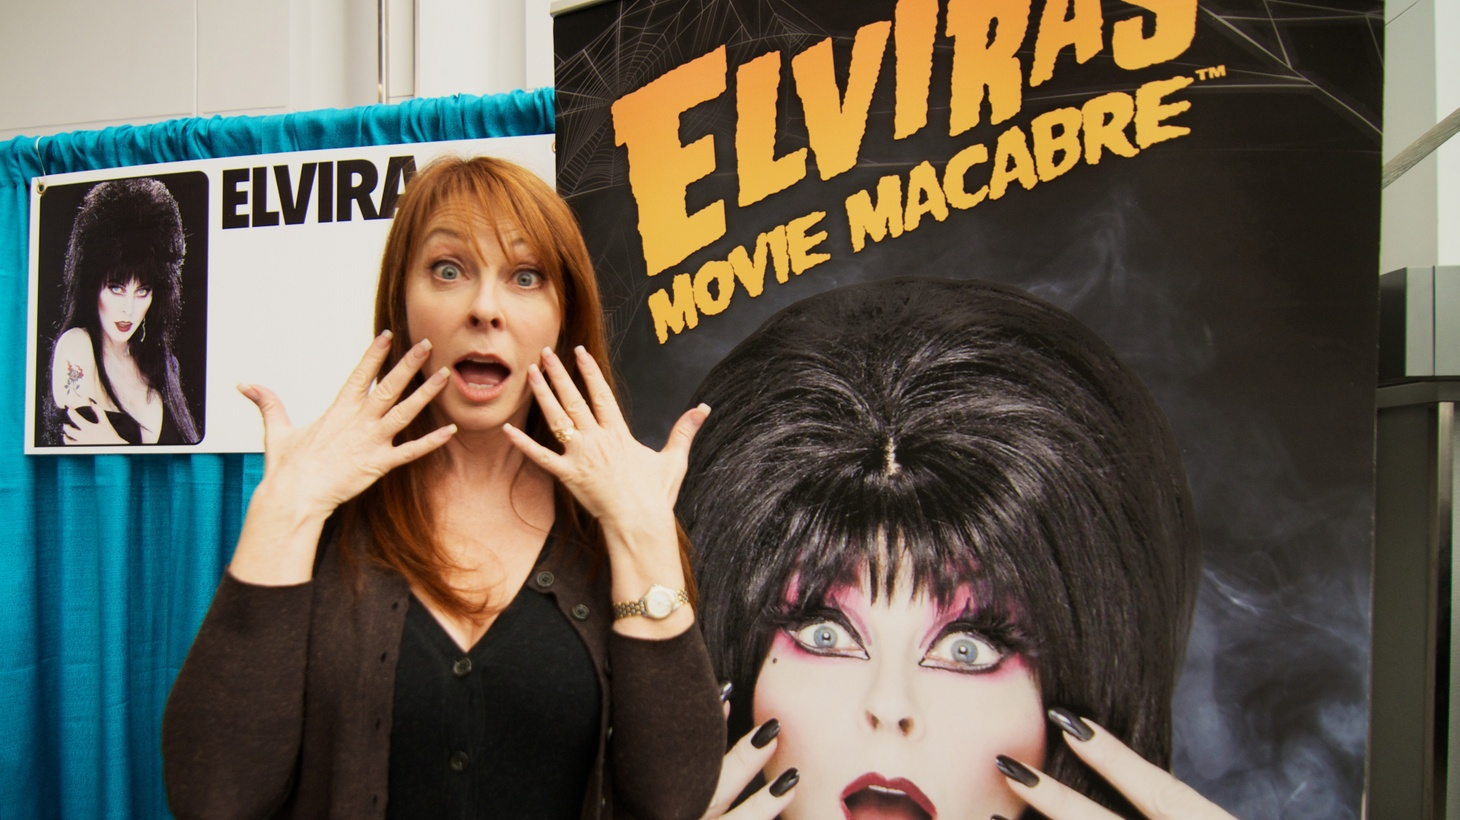 Cassandra Peterson is best known for her on-screen horror hostess persona of Elvira, Mistress of the Dark, but she has incredible music stories to share. She tells DJ Garth Trinidad about going on a date with Elvis and a meet up with Jimi Hendrix.